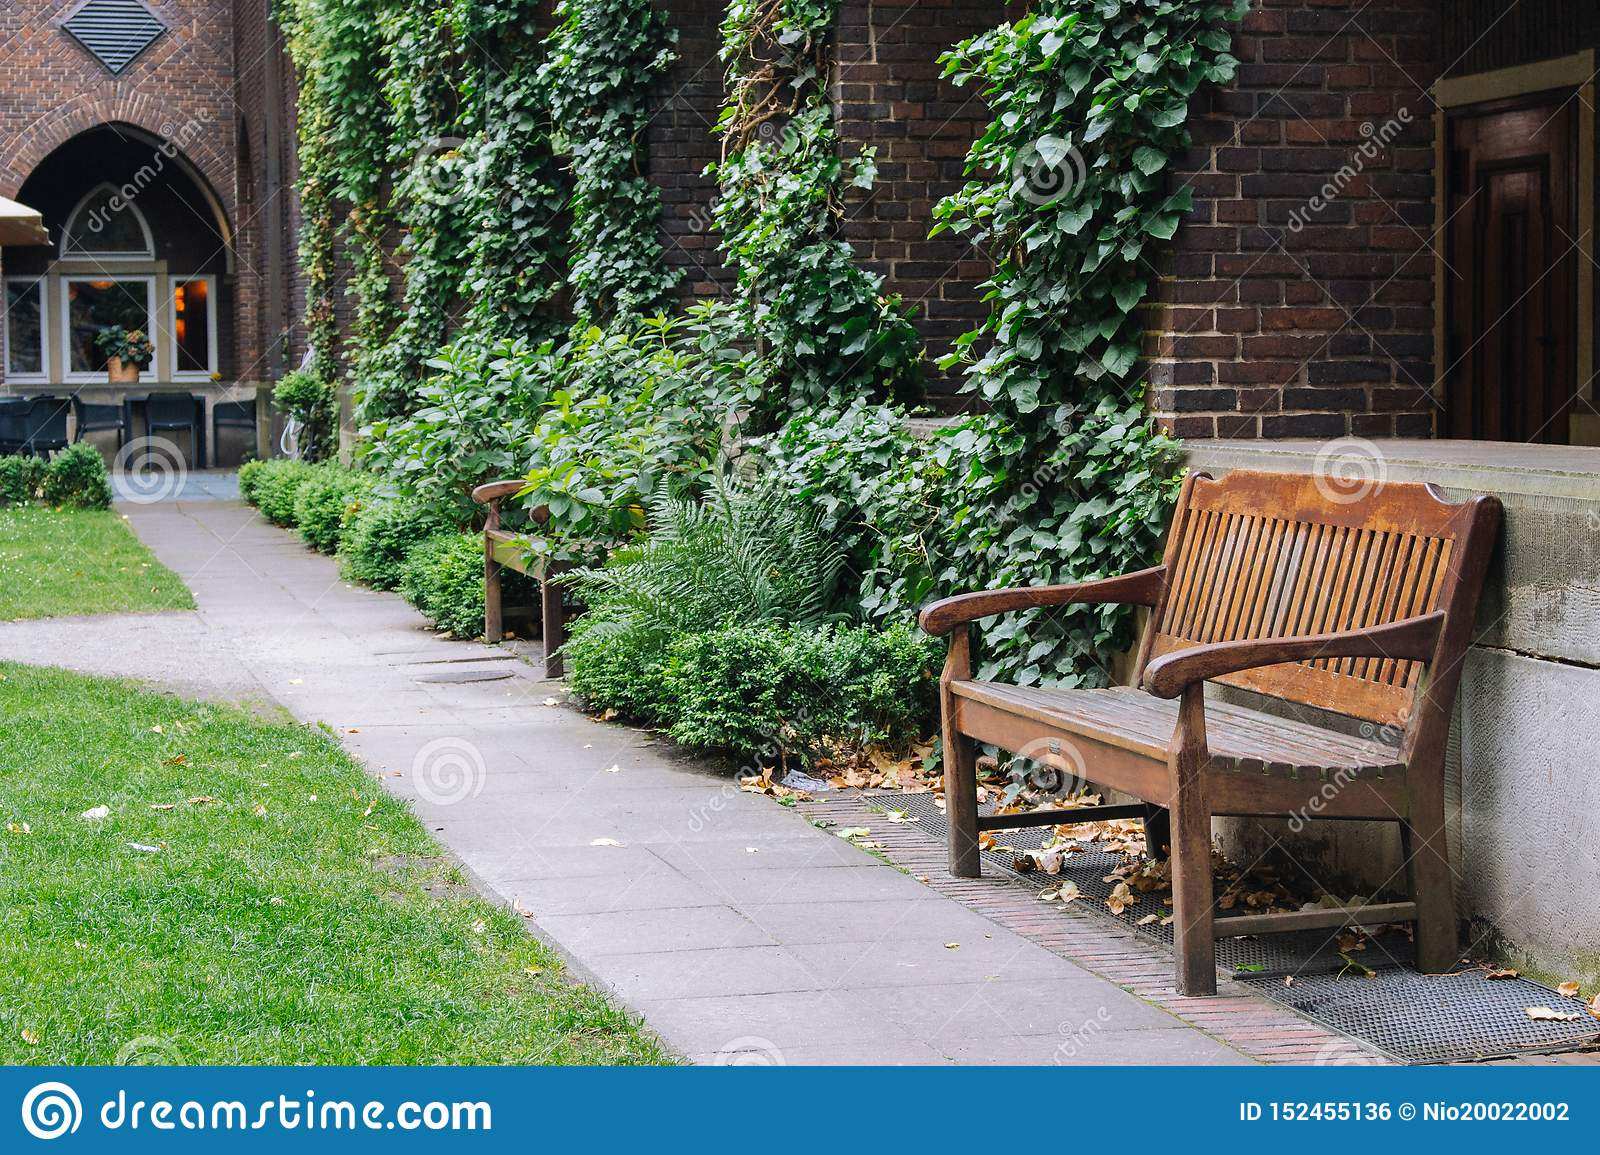 https www dreamstime com empty wooden bench cozy backyard summer patio outdoor furniture garden grass trees park relax peace concept travel image152455136